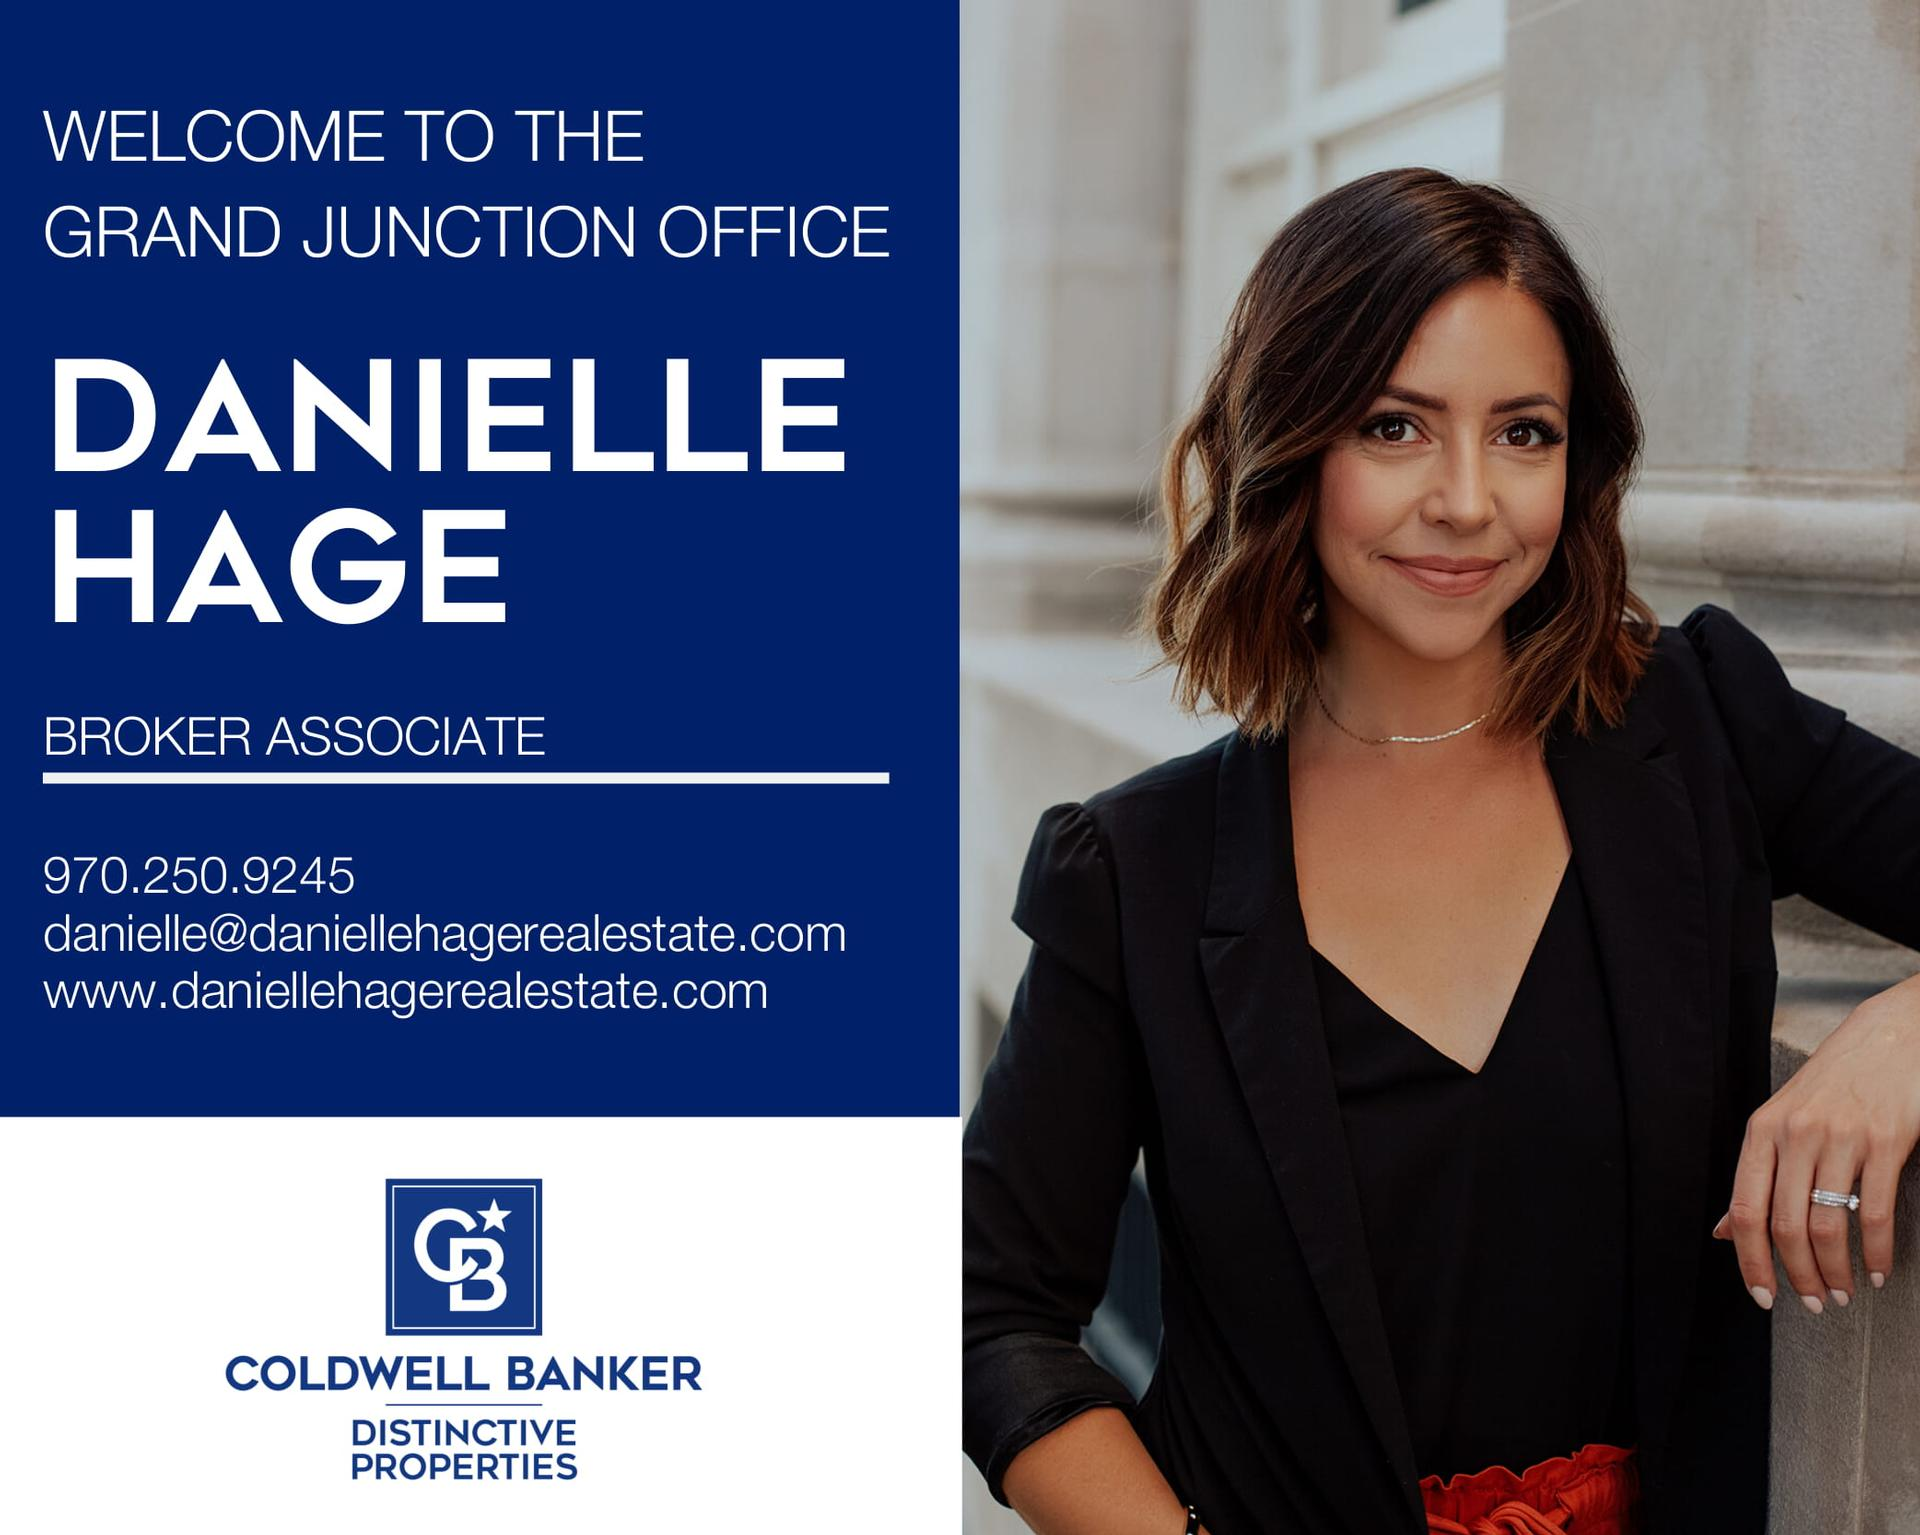 Please help us welcome Danielle Hage back into our Coldwell Banker family! Main Photo